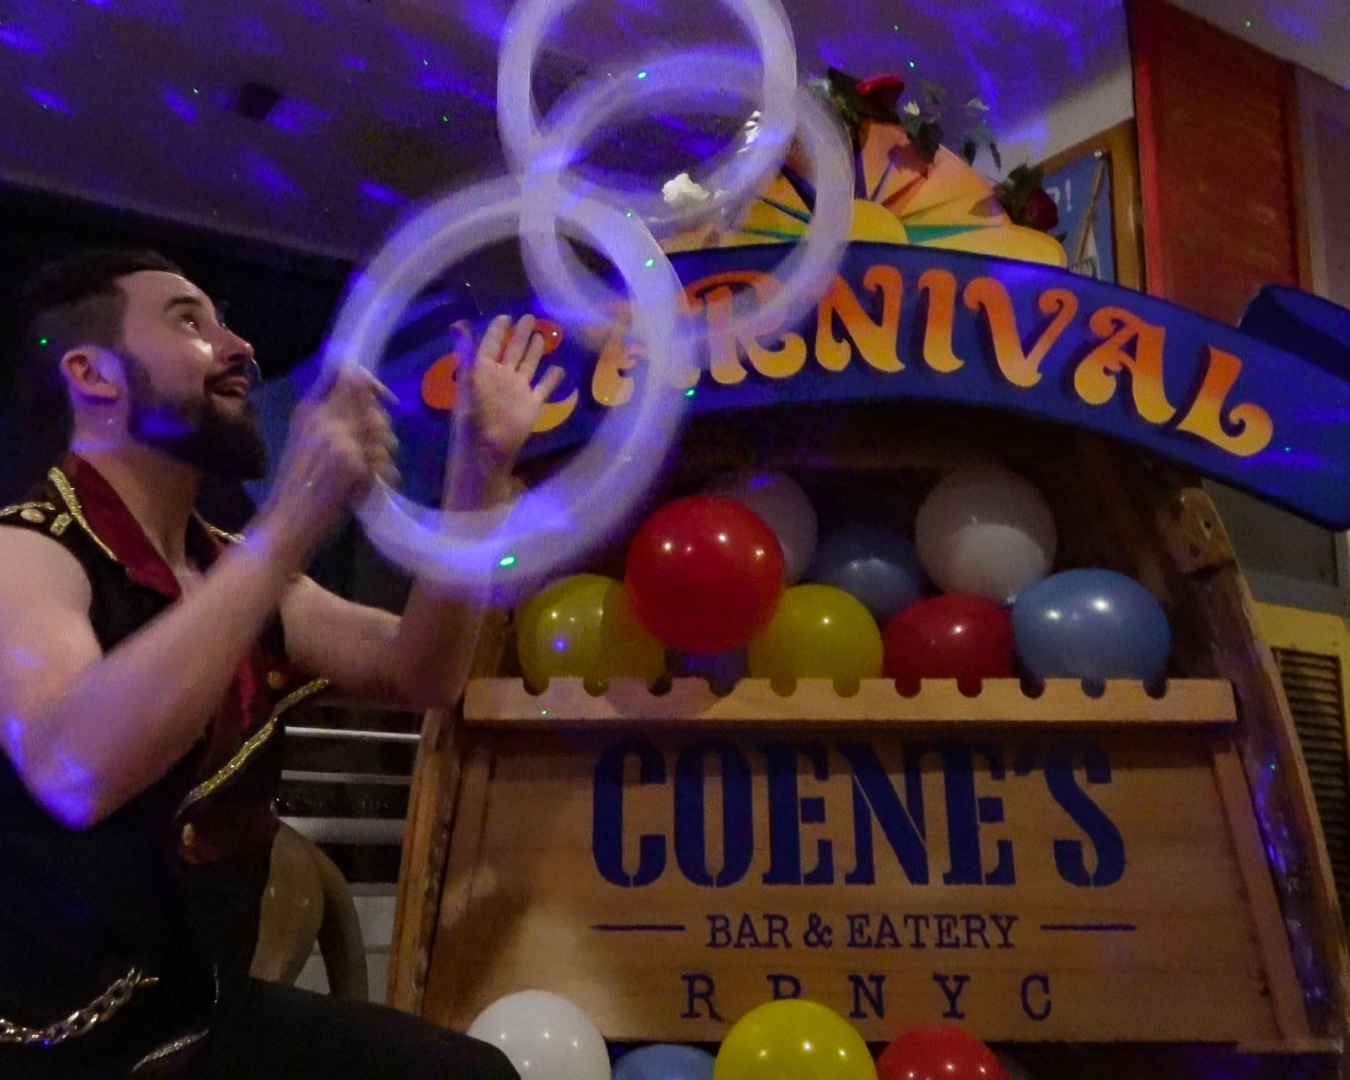 A person juggling hoops in a carnival